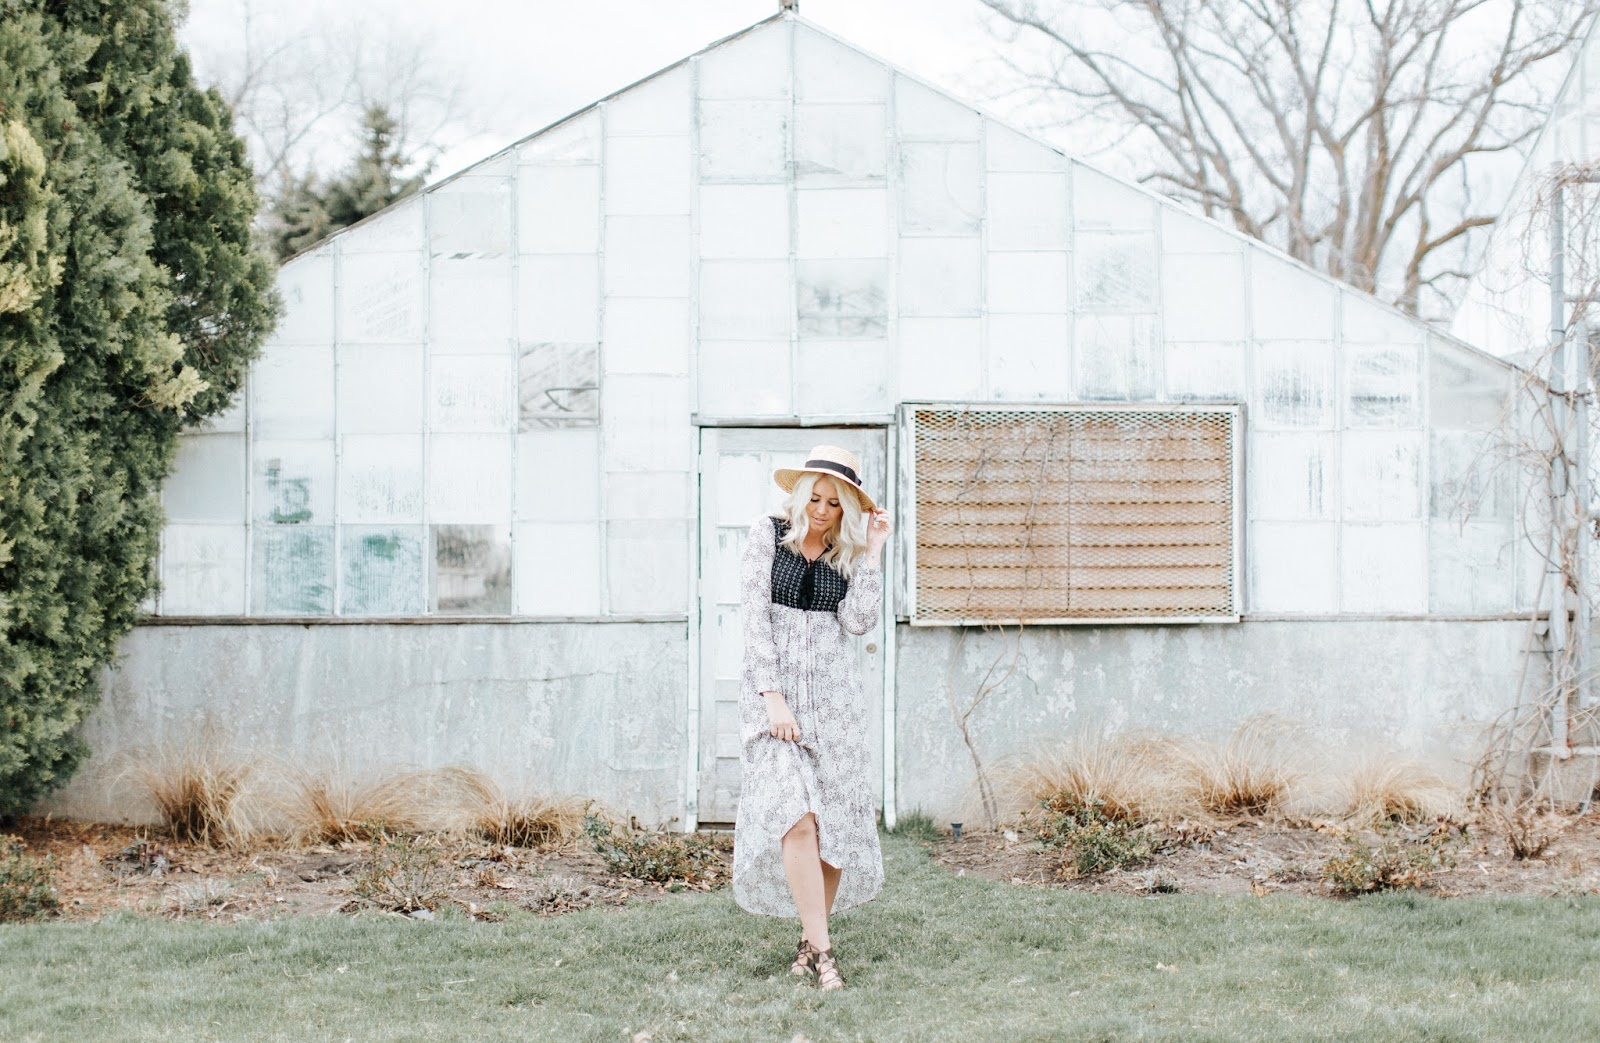 Greenhouse photoshoot, Modesty, Utah Fashion Blogger